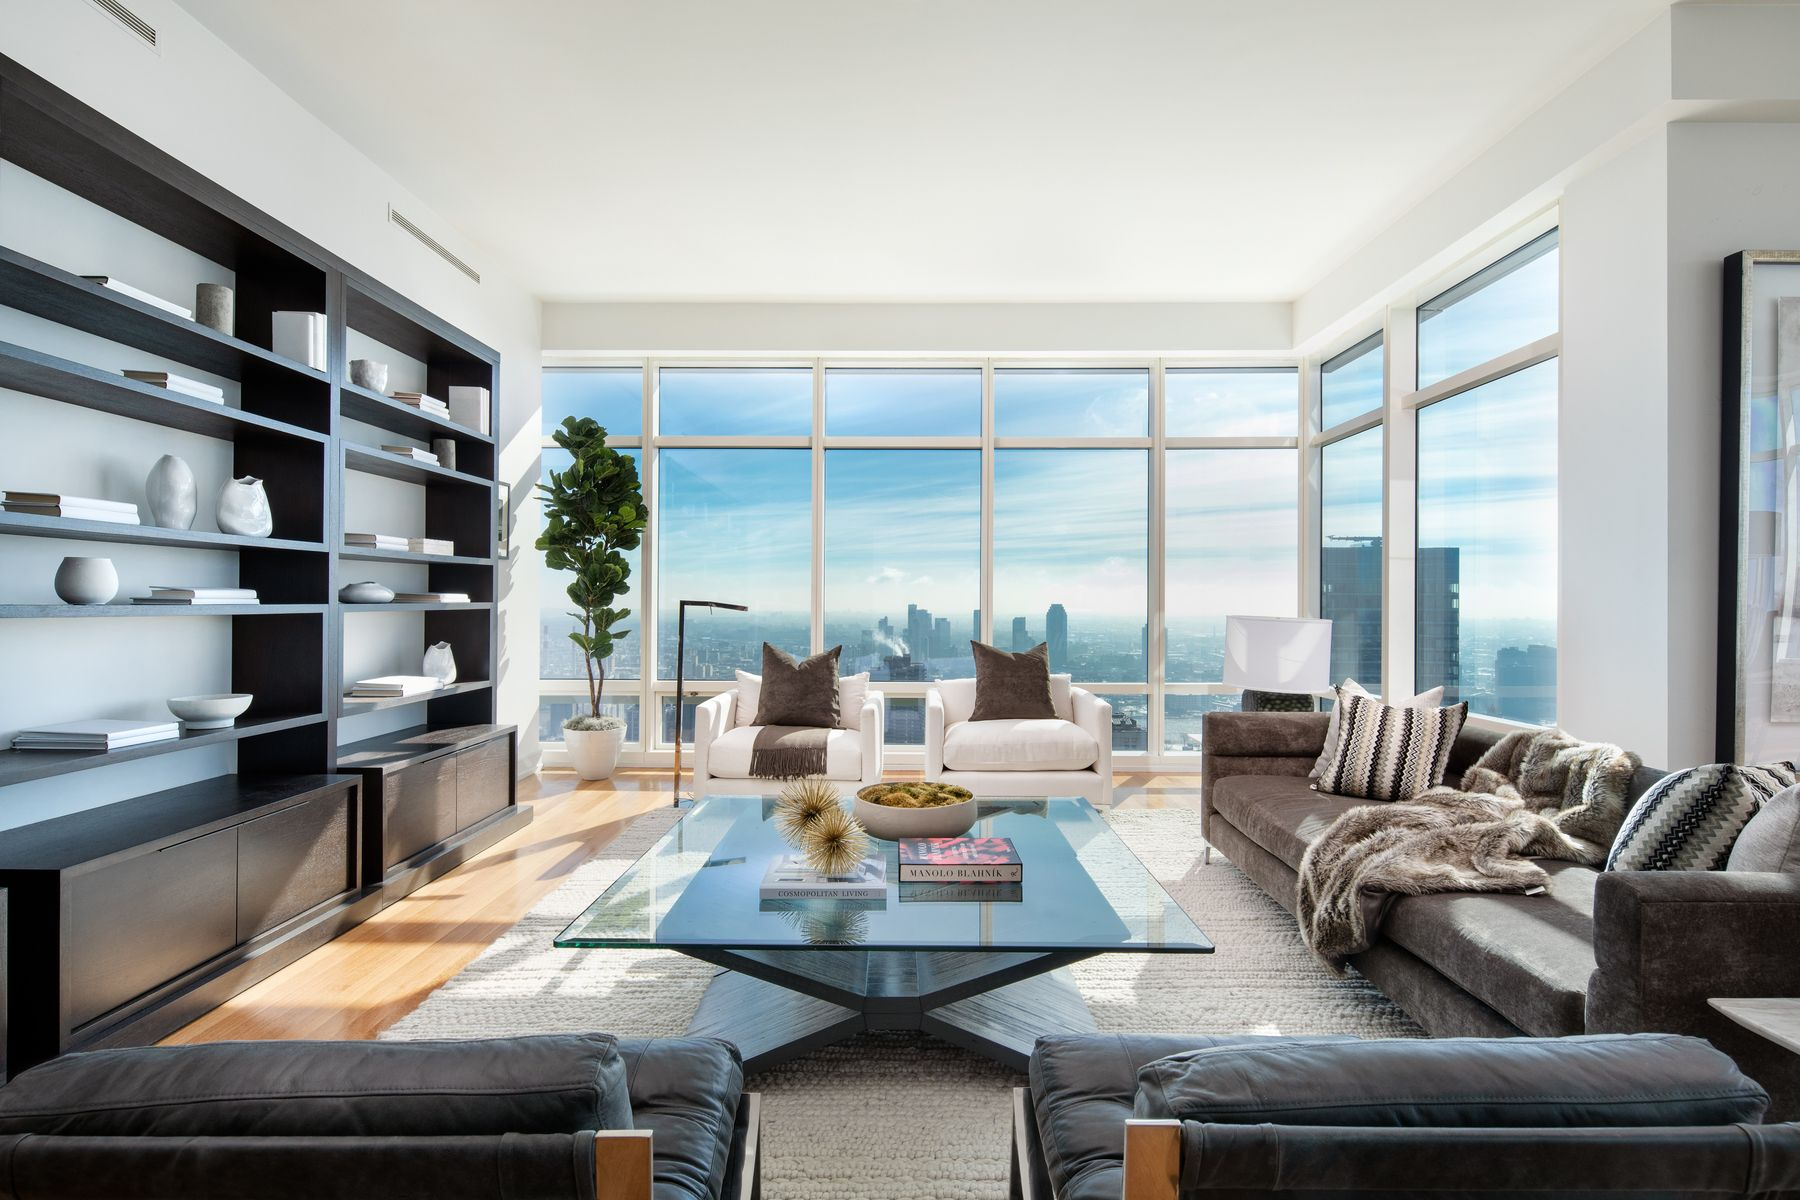 Condominiums for Sale at One Beacon Court 151 East 58th Street 46C New York, New York 10022 United States